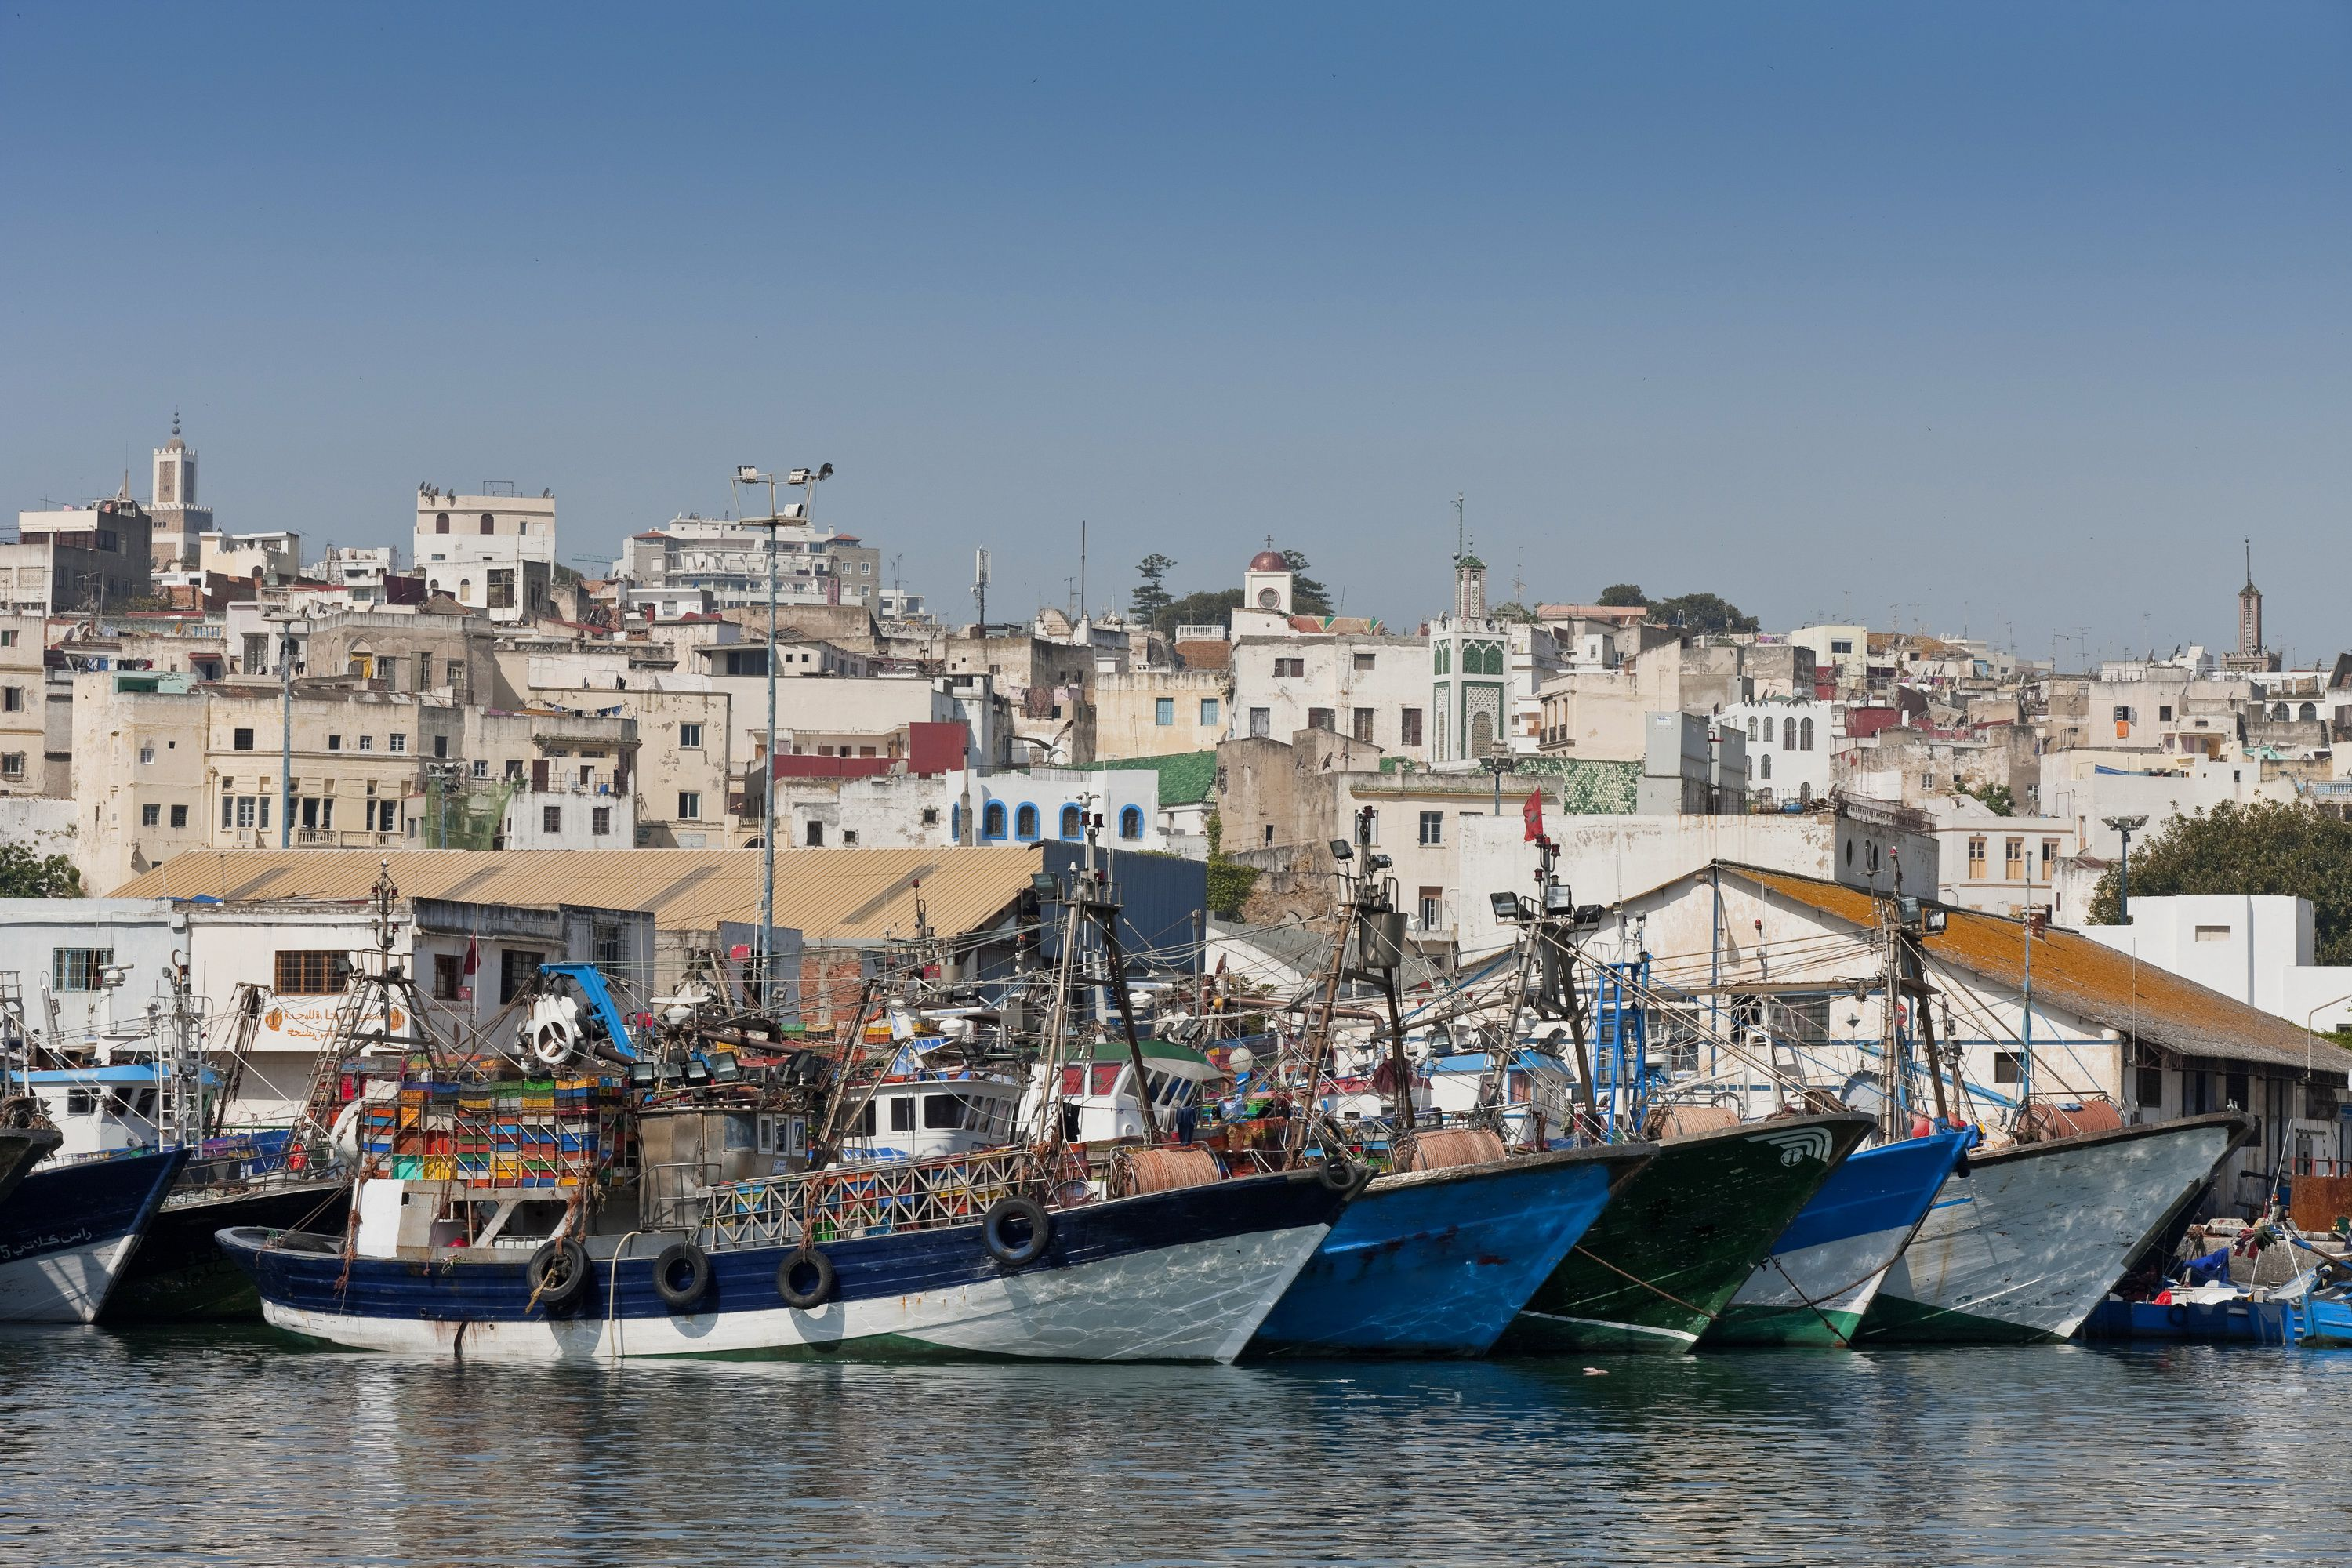 Tangier fascinating city on the edge of africa - Moroccan port on the strait of gibraltar ...